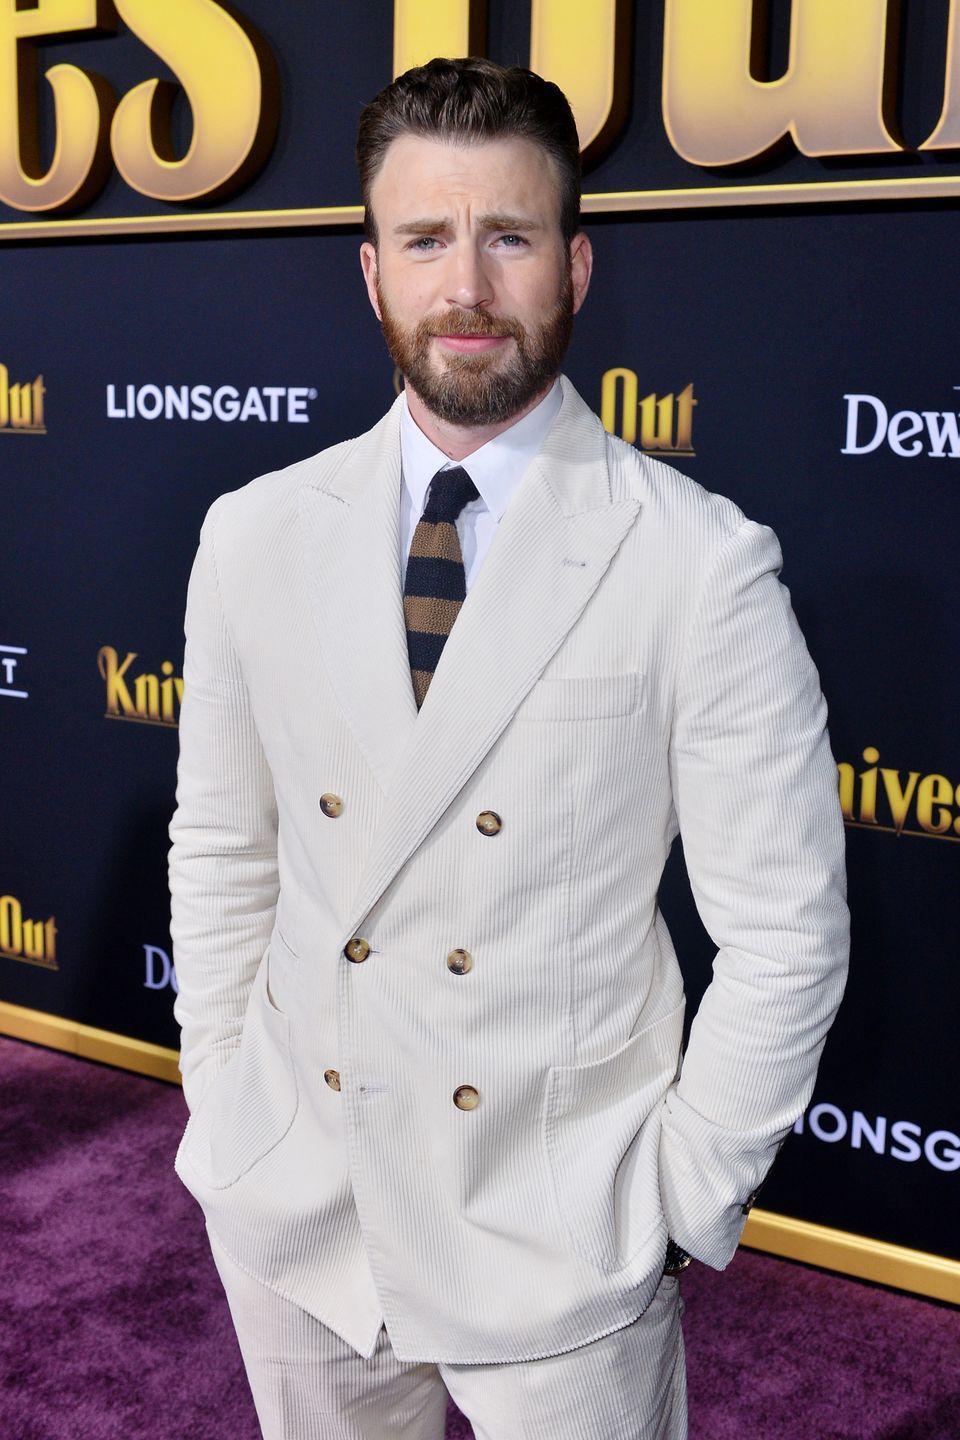 "<p>For a man who's a part of one of the most popular superhero franchises, you'd think he'd been a host at least once. While it's sadly not the case, he does have an affinity for <a href=""https://www.indiewire.com/2019/01/chris-evans-rip-donald-trump-jr-saturday-night-live-flub-1202040211/"" rel=""nofollow noopener"" target=""_blank"" data-ylk=""slk:reacting"" class=""link rapid-noclick-resp"">reacting</a> to the show's sketches.</p>"